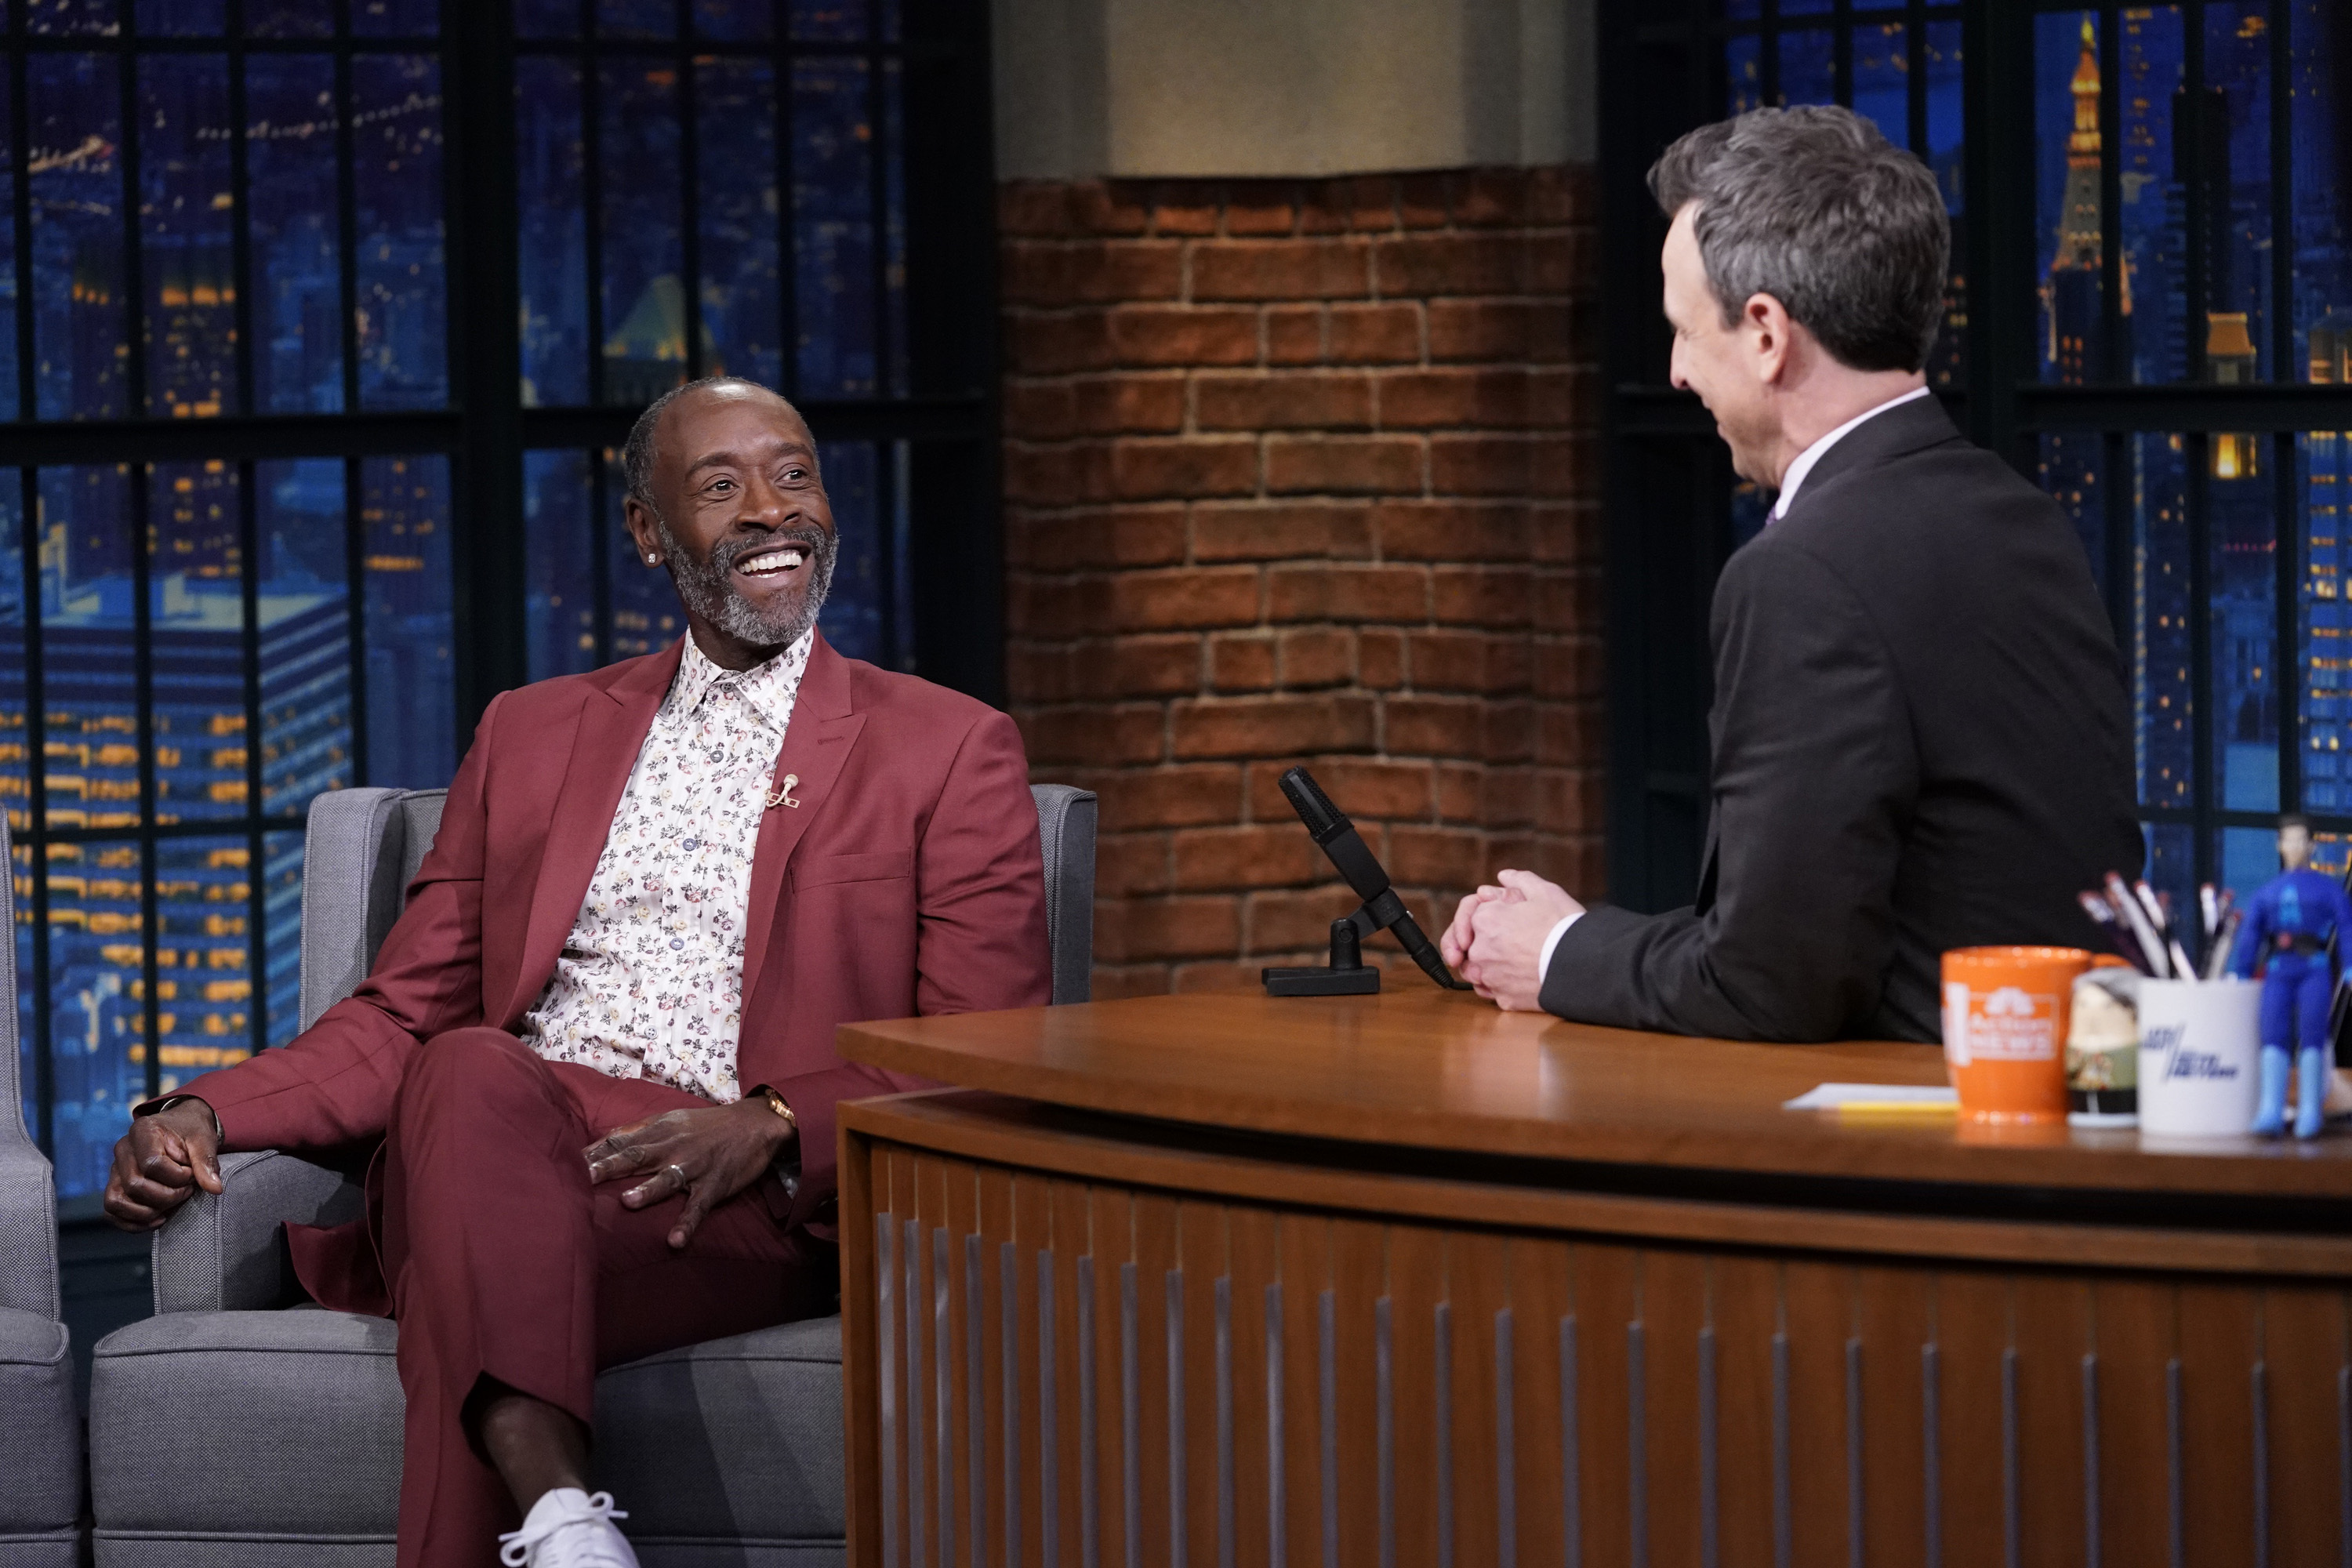 Don Cheadle during an interview with host Seth Meyers on February 12, 2019.